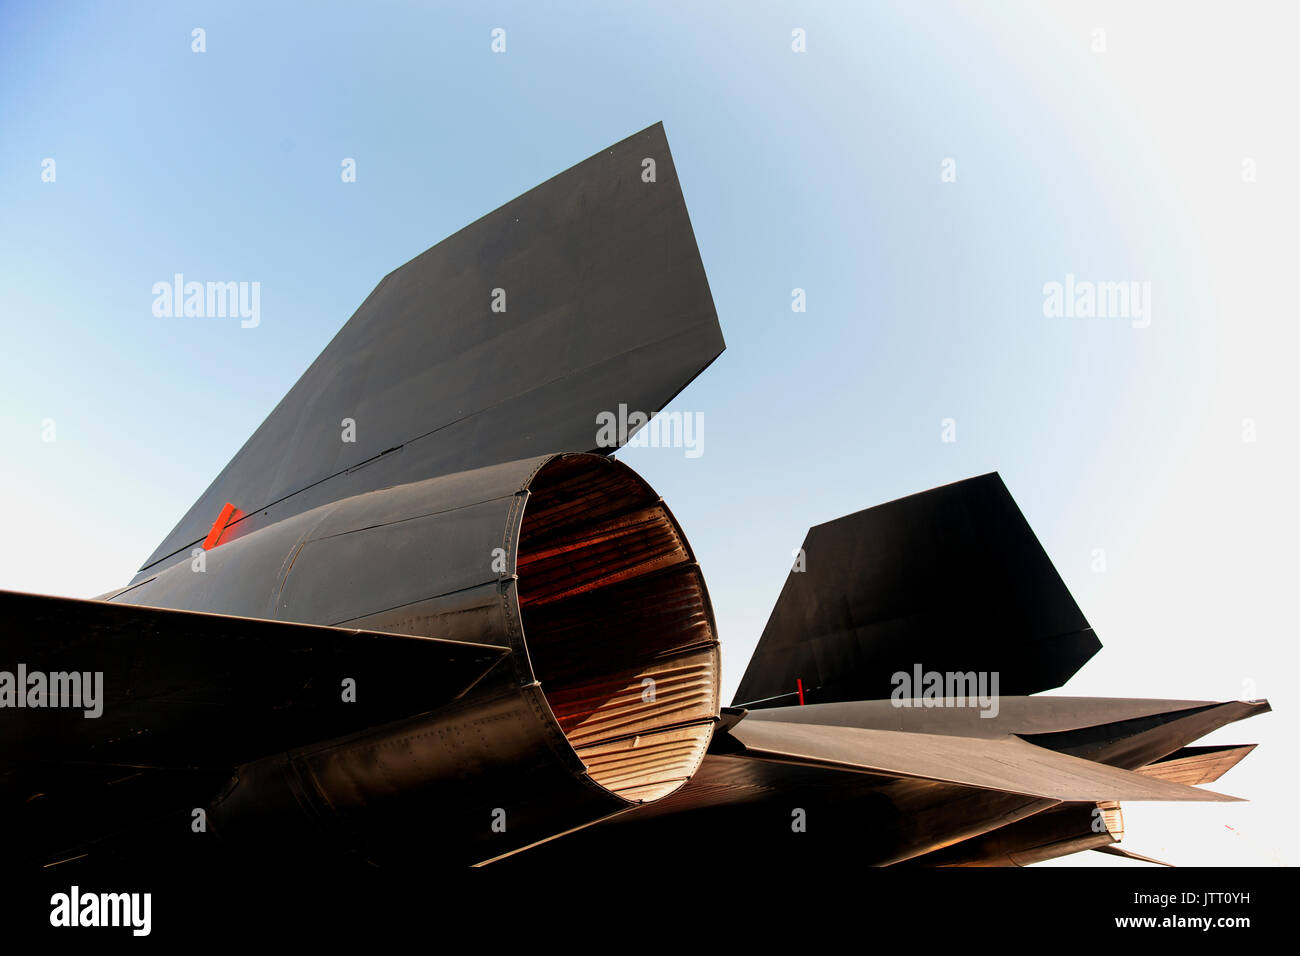 Close up shot of  a black jet fighter plane - Stock Image